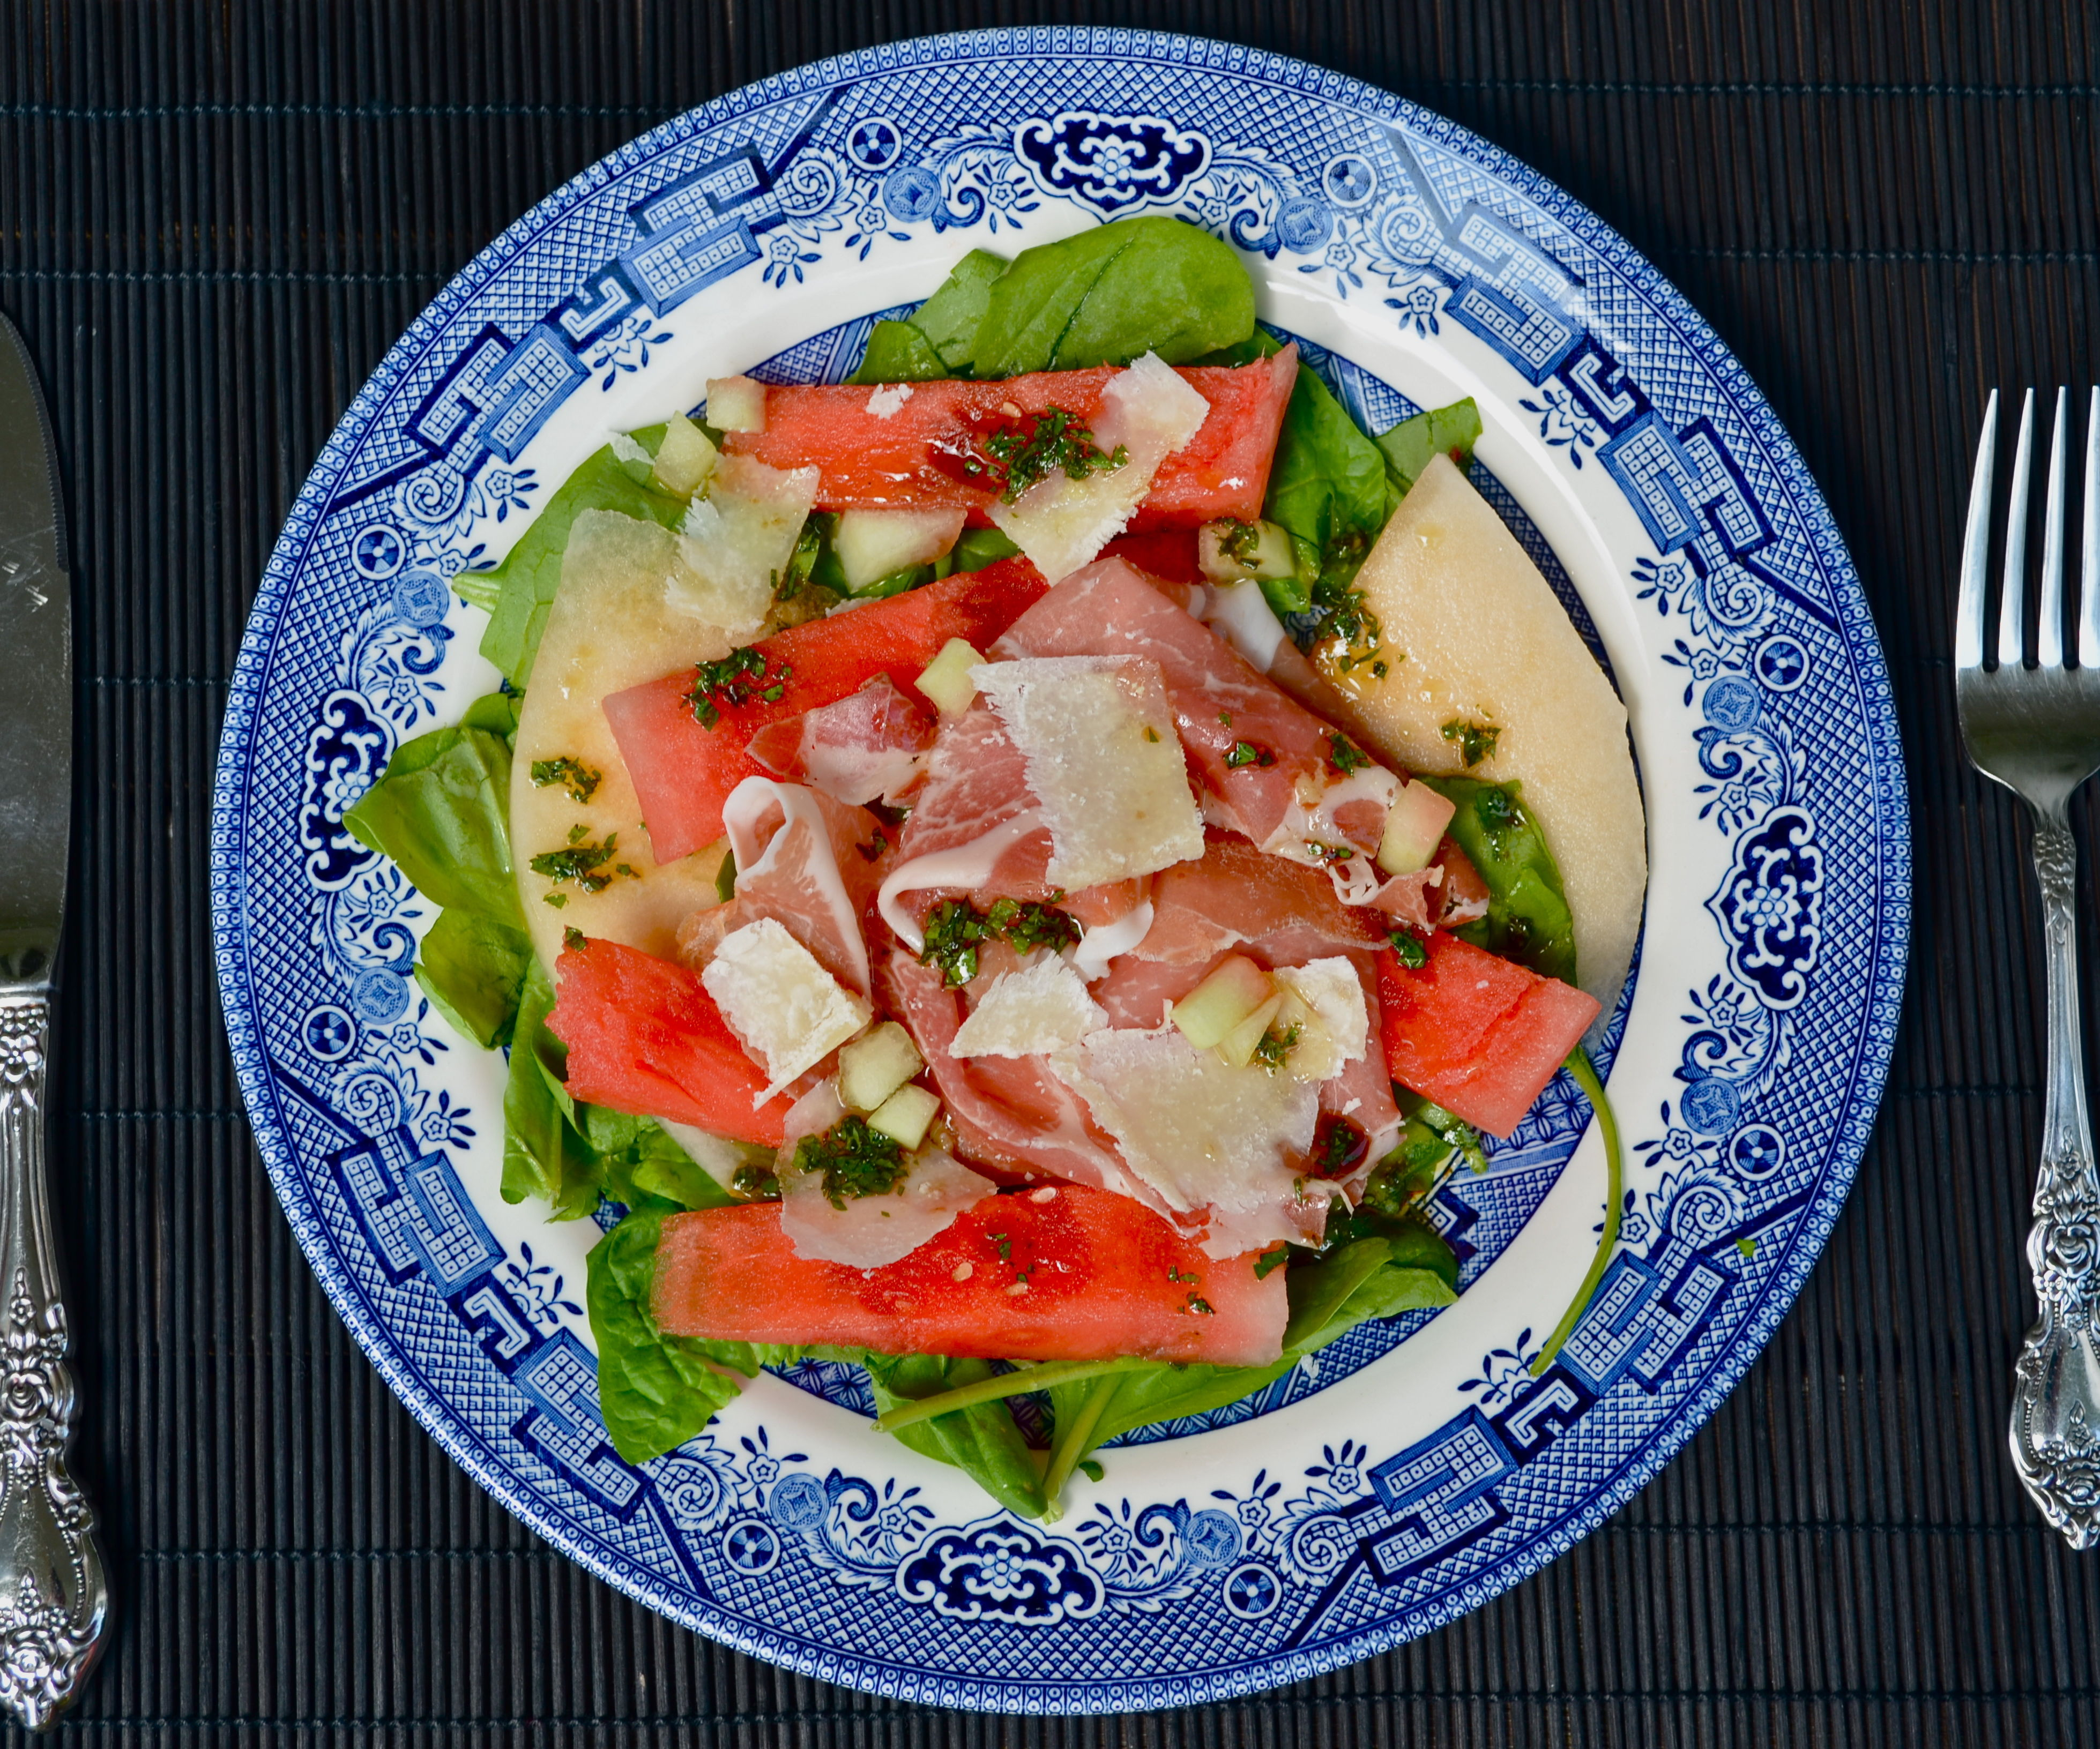 Watermelon Salad with Parma Ham, Quick Pickled Watermelon Rind and Parmigiano-Reggiano